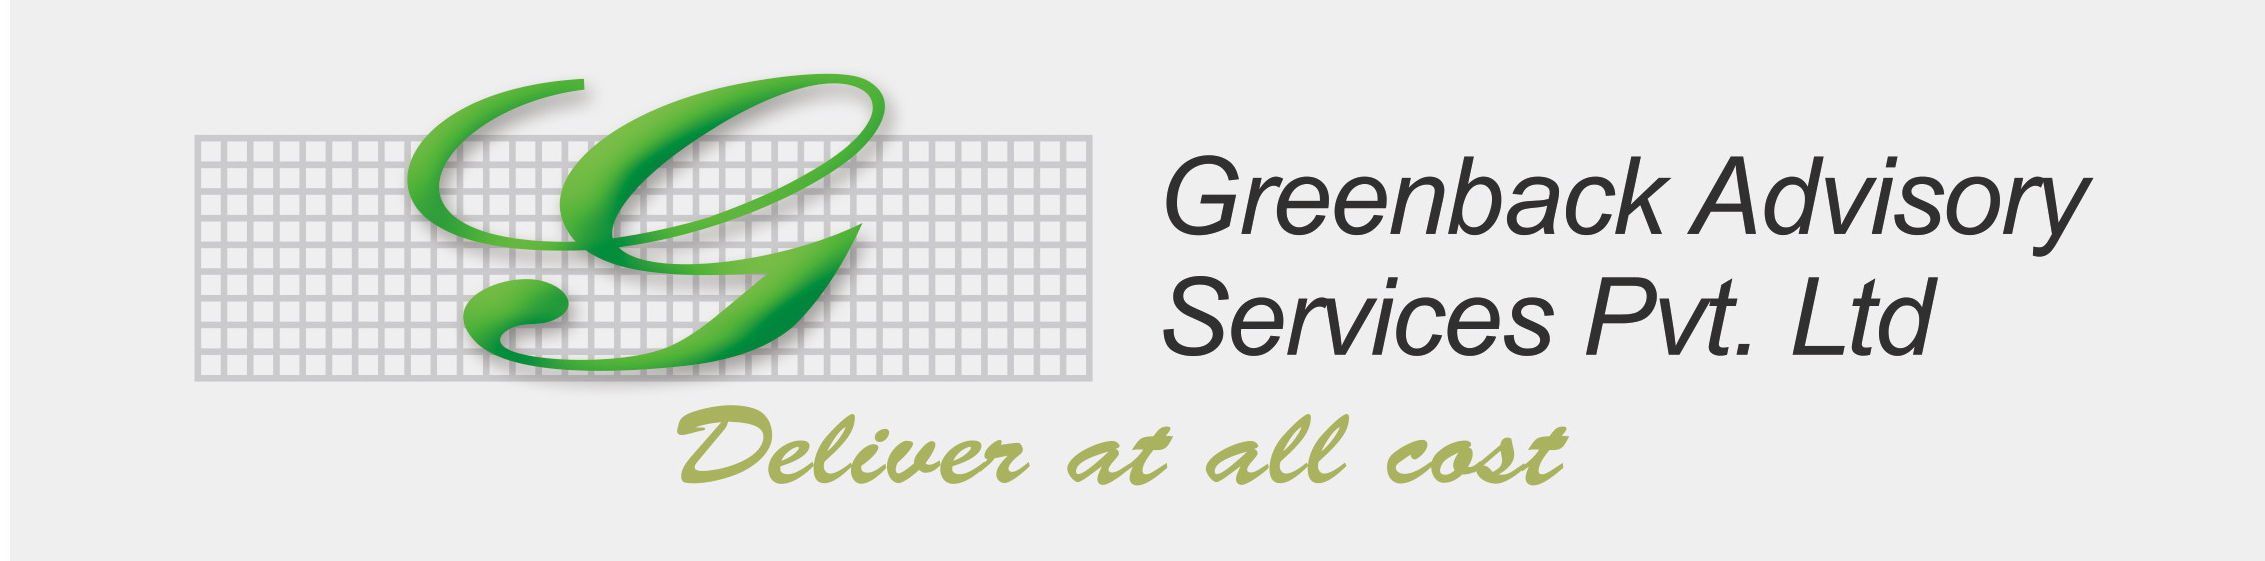 Greenback Advisory Services Private Limited